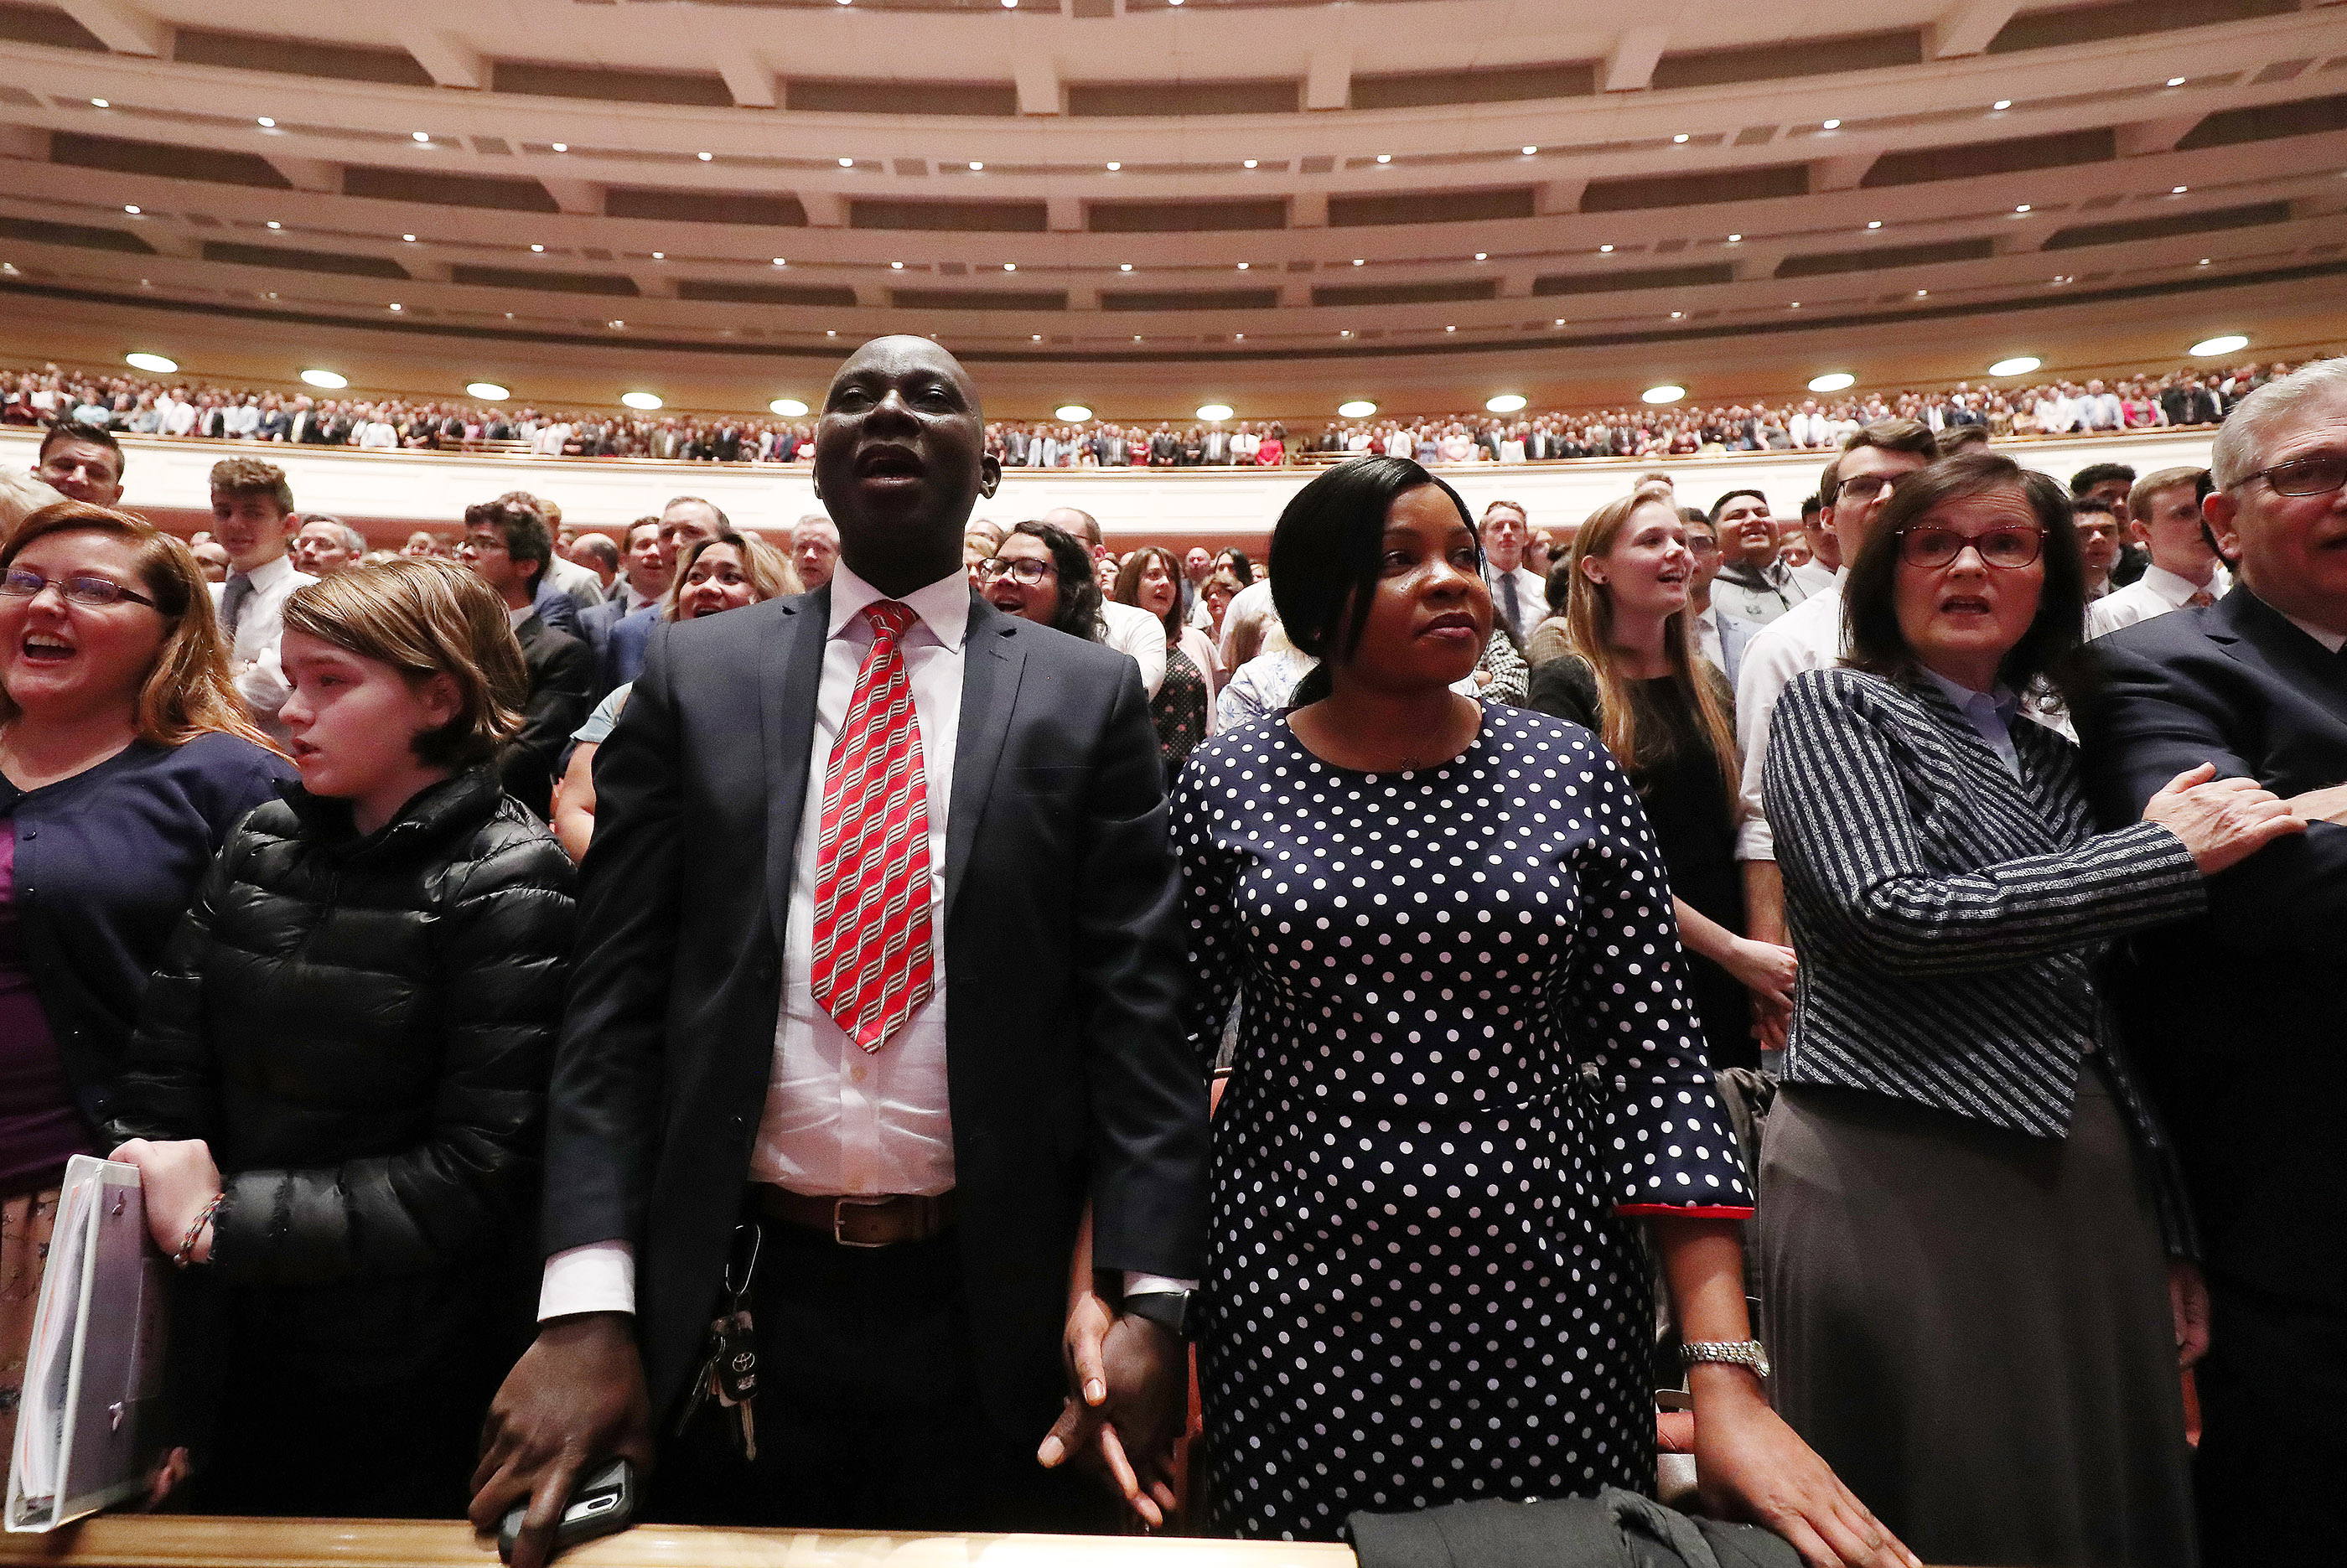 Matthew and Mary Evuarherhe sing a congregational hymn during the 189th Annual General Conference of The Church of Jesus Christ of Latter-day Saints in Salt Lake City on Saturday, April 6, 2019.